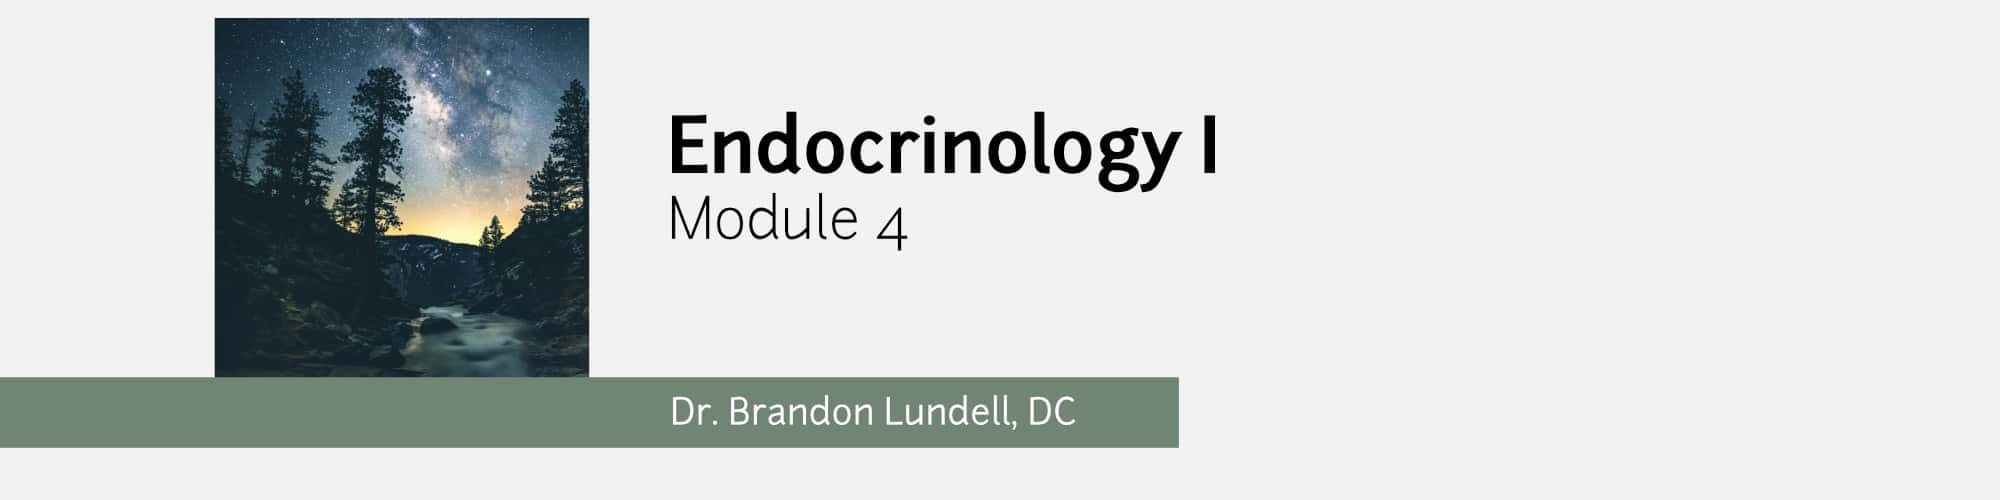 Module 4 - Endocrinology One